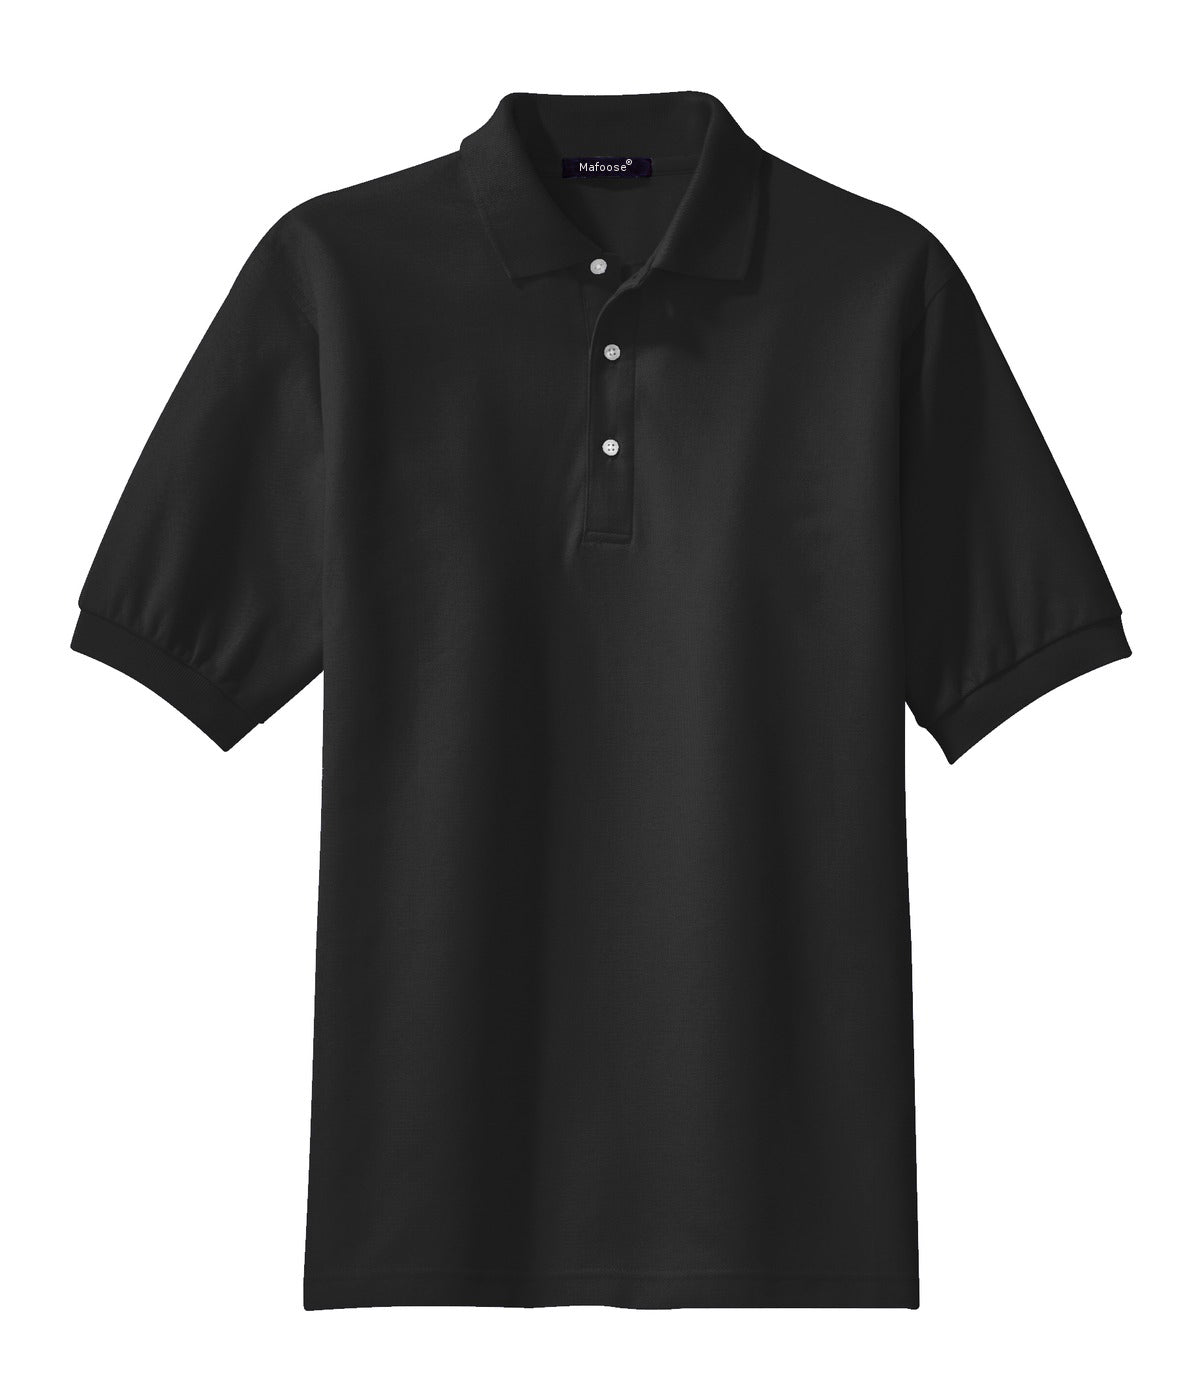 Mafoose Men's 100% Pima Cotton Polo Shirt Black-Front